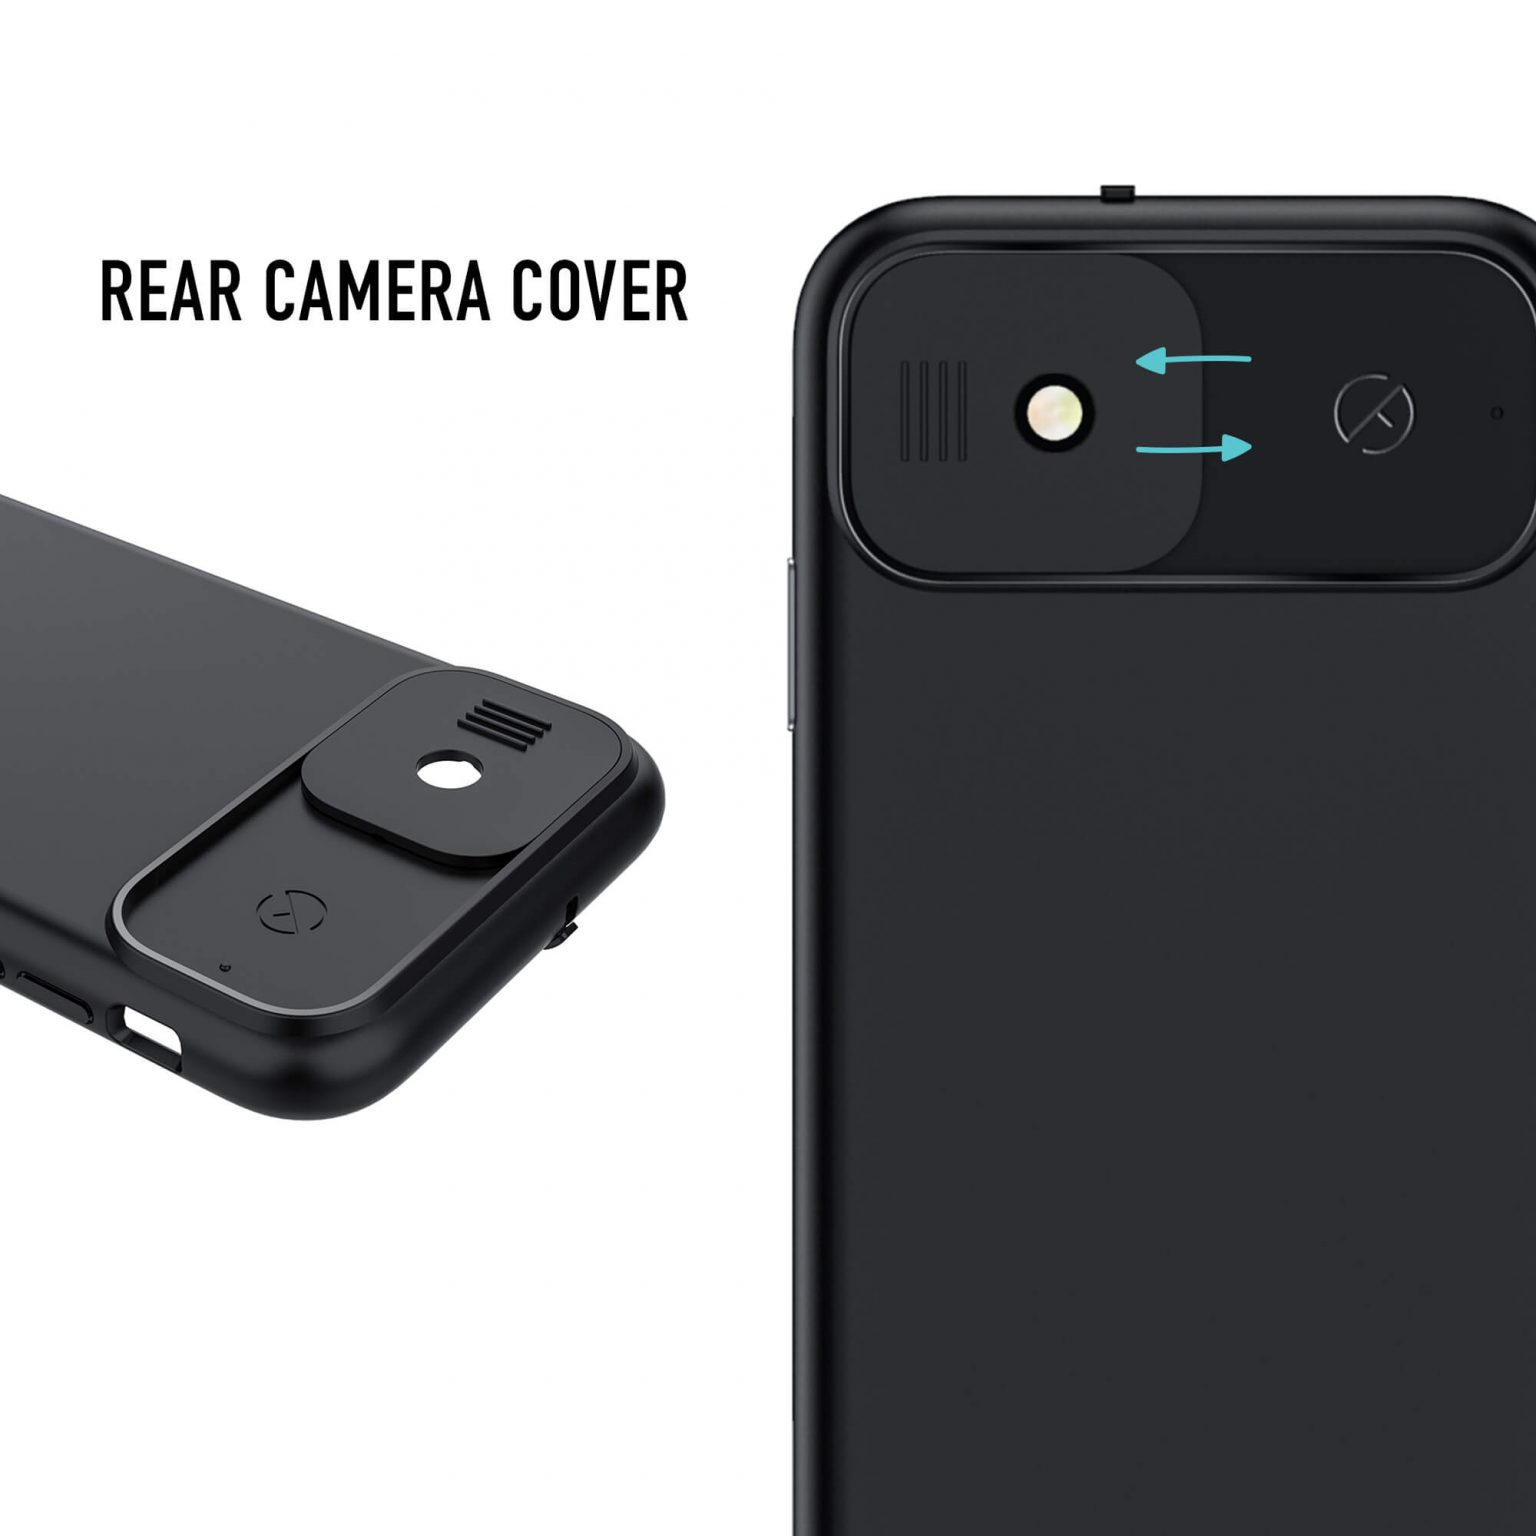 iPhone 11 Privacy Case with Camera Covers | Spy-Fy